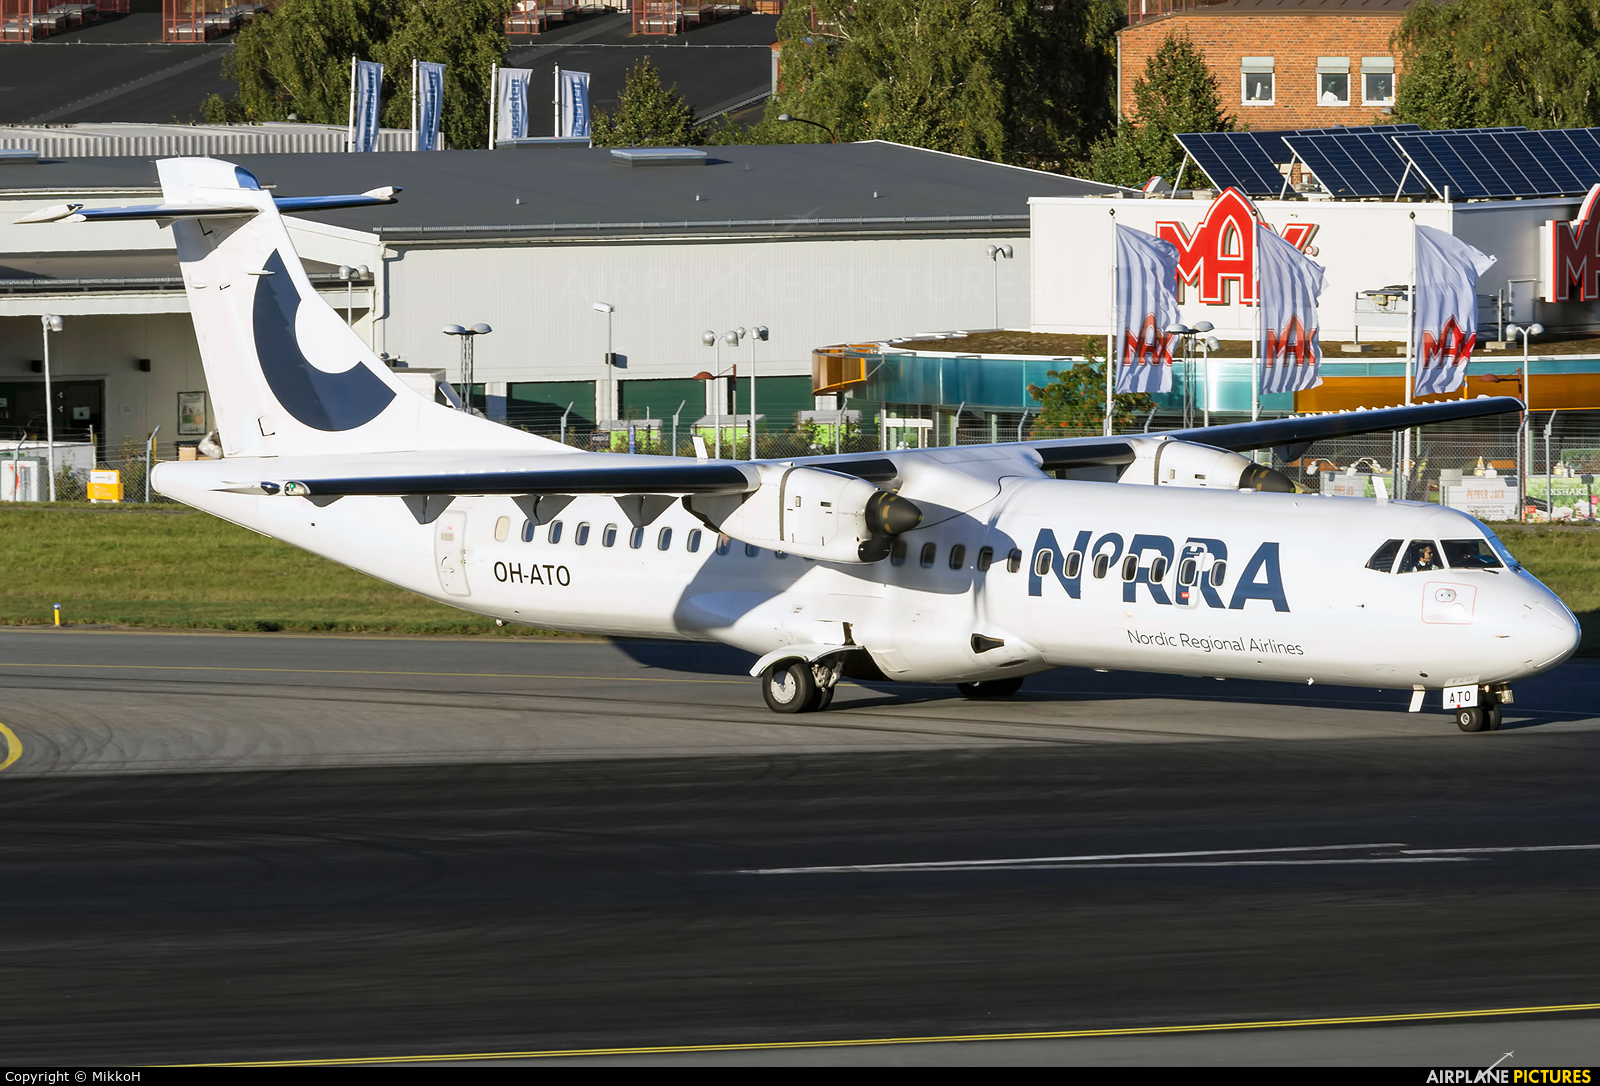 NoRRA - Nordic Regional Airlines OH-ATO aircraft at Stockholm - Bromma